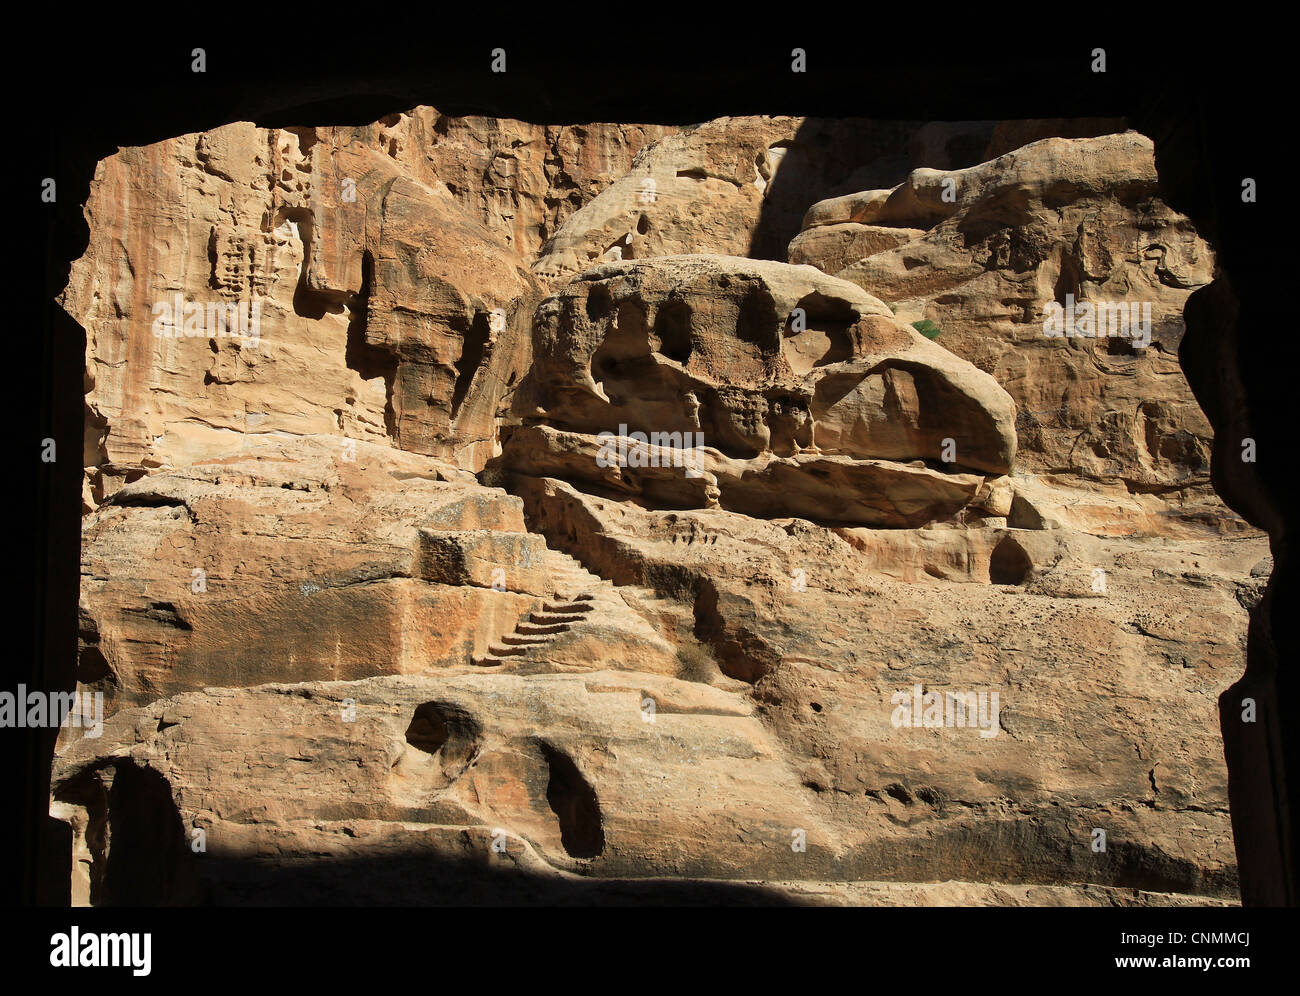 Cliff formations of the Siq al-Barid showing remains of the Nabatean culture seen from a cave in Little Petra. Beidha, Stock Photo